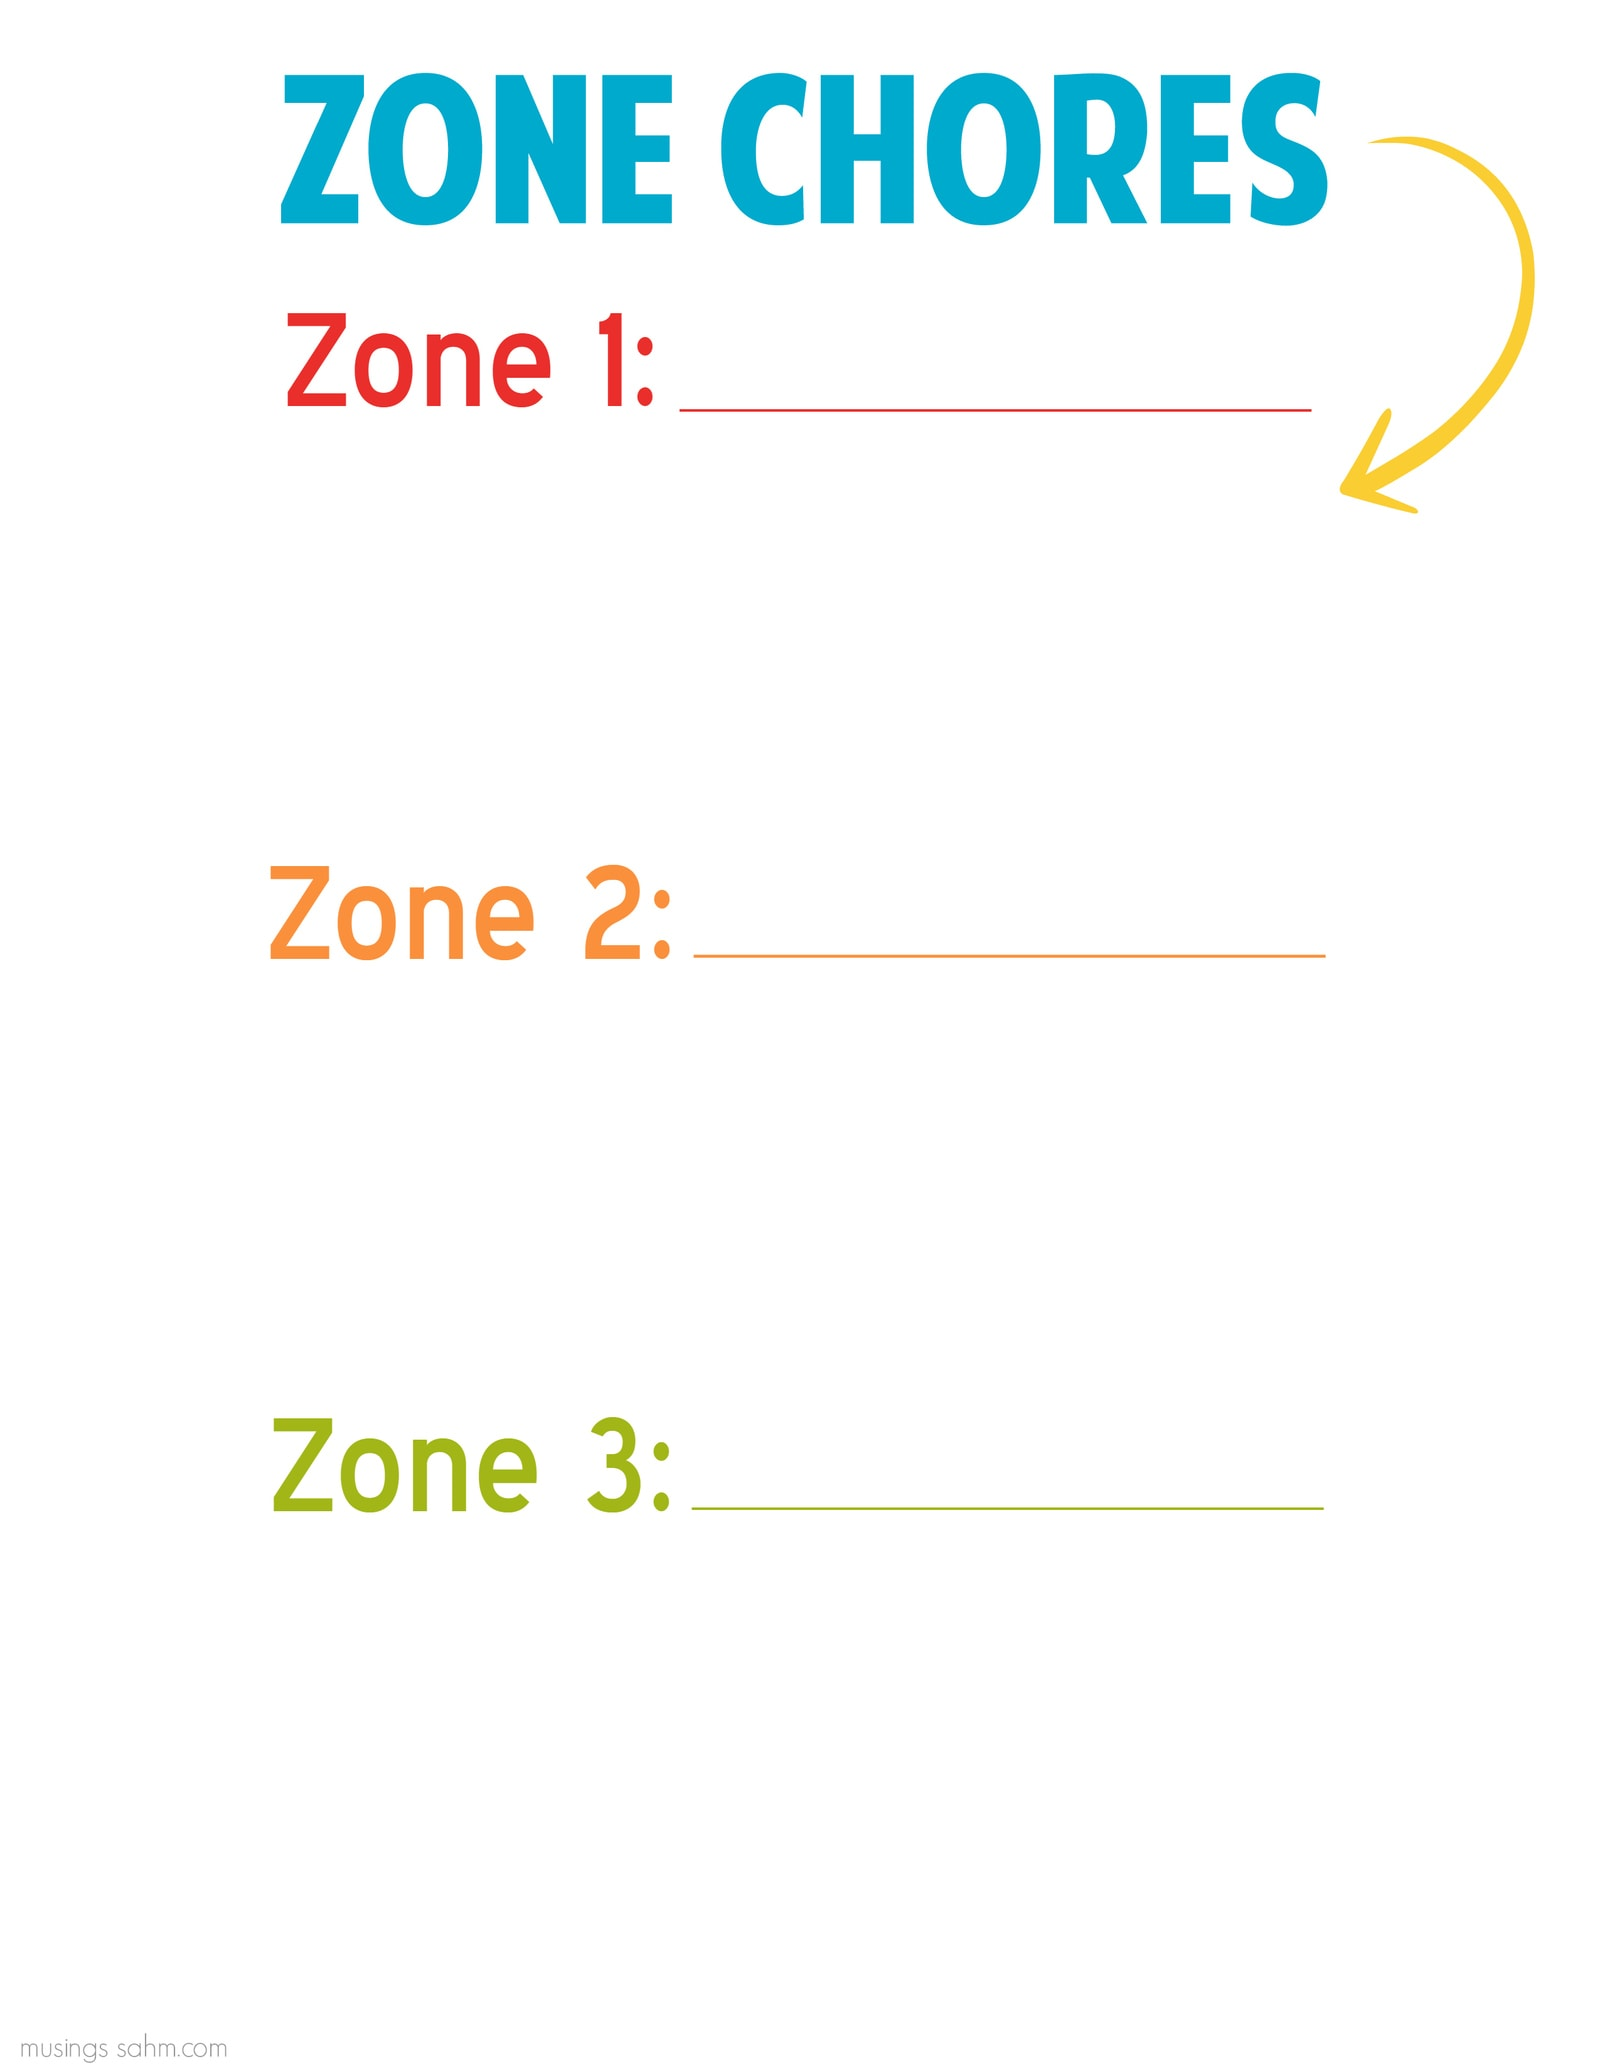 Bathrooms are ided into four zones 1 2 and 3 outside zone - Get A Free Printable Chore Chart For Kids Plus Find Practical Ideas For Getting Kids